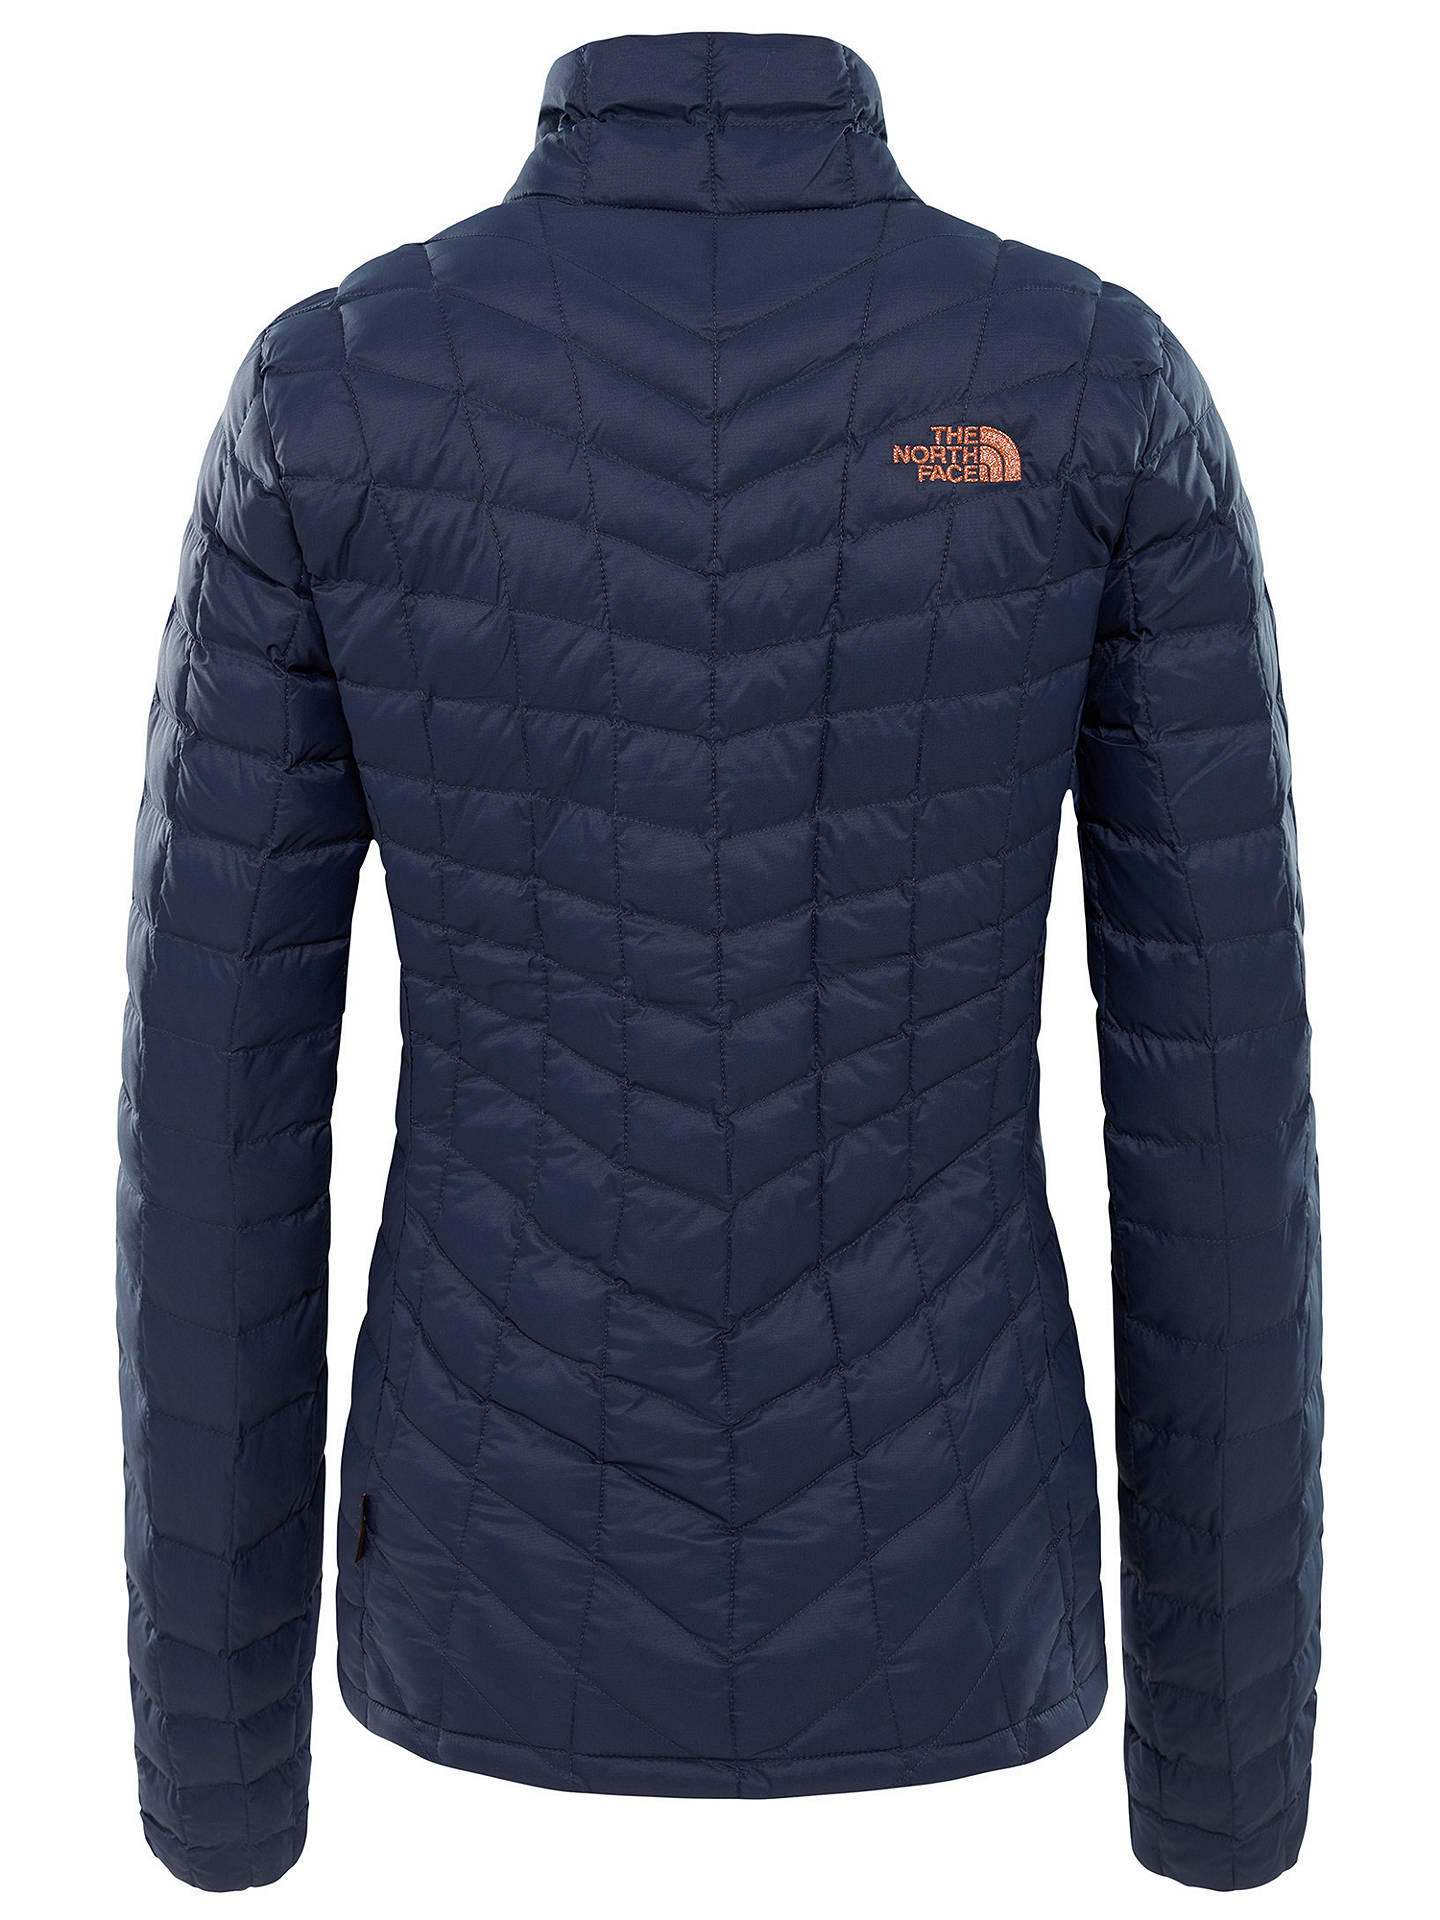 BuyThe North Face Thermoball Full Zip Women's Jacket, Navy/Metallic Copper, M Online at johnlewis.com